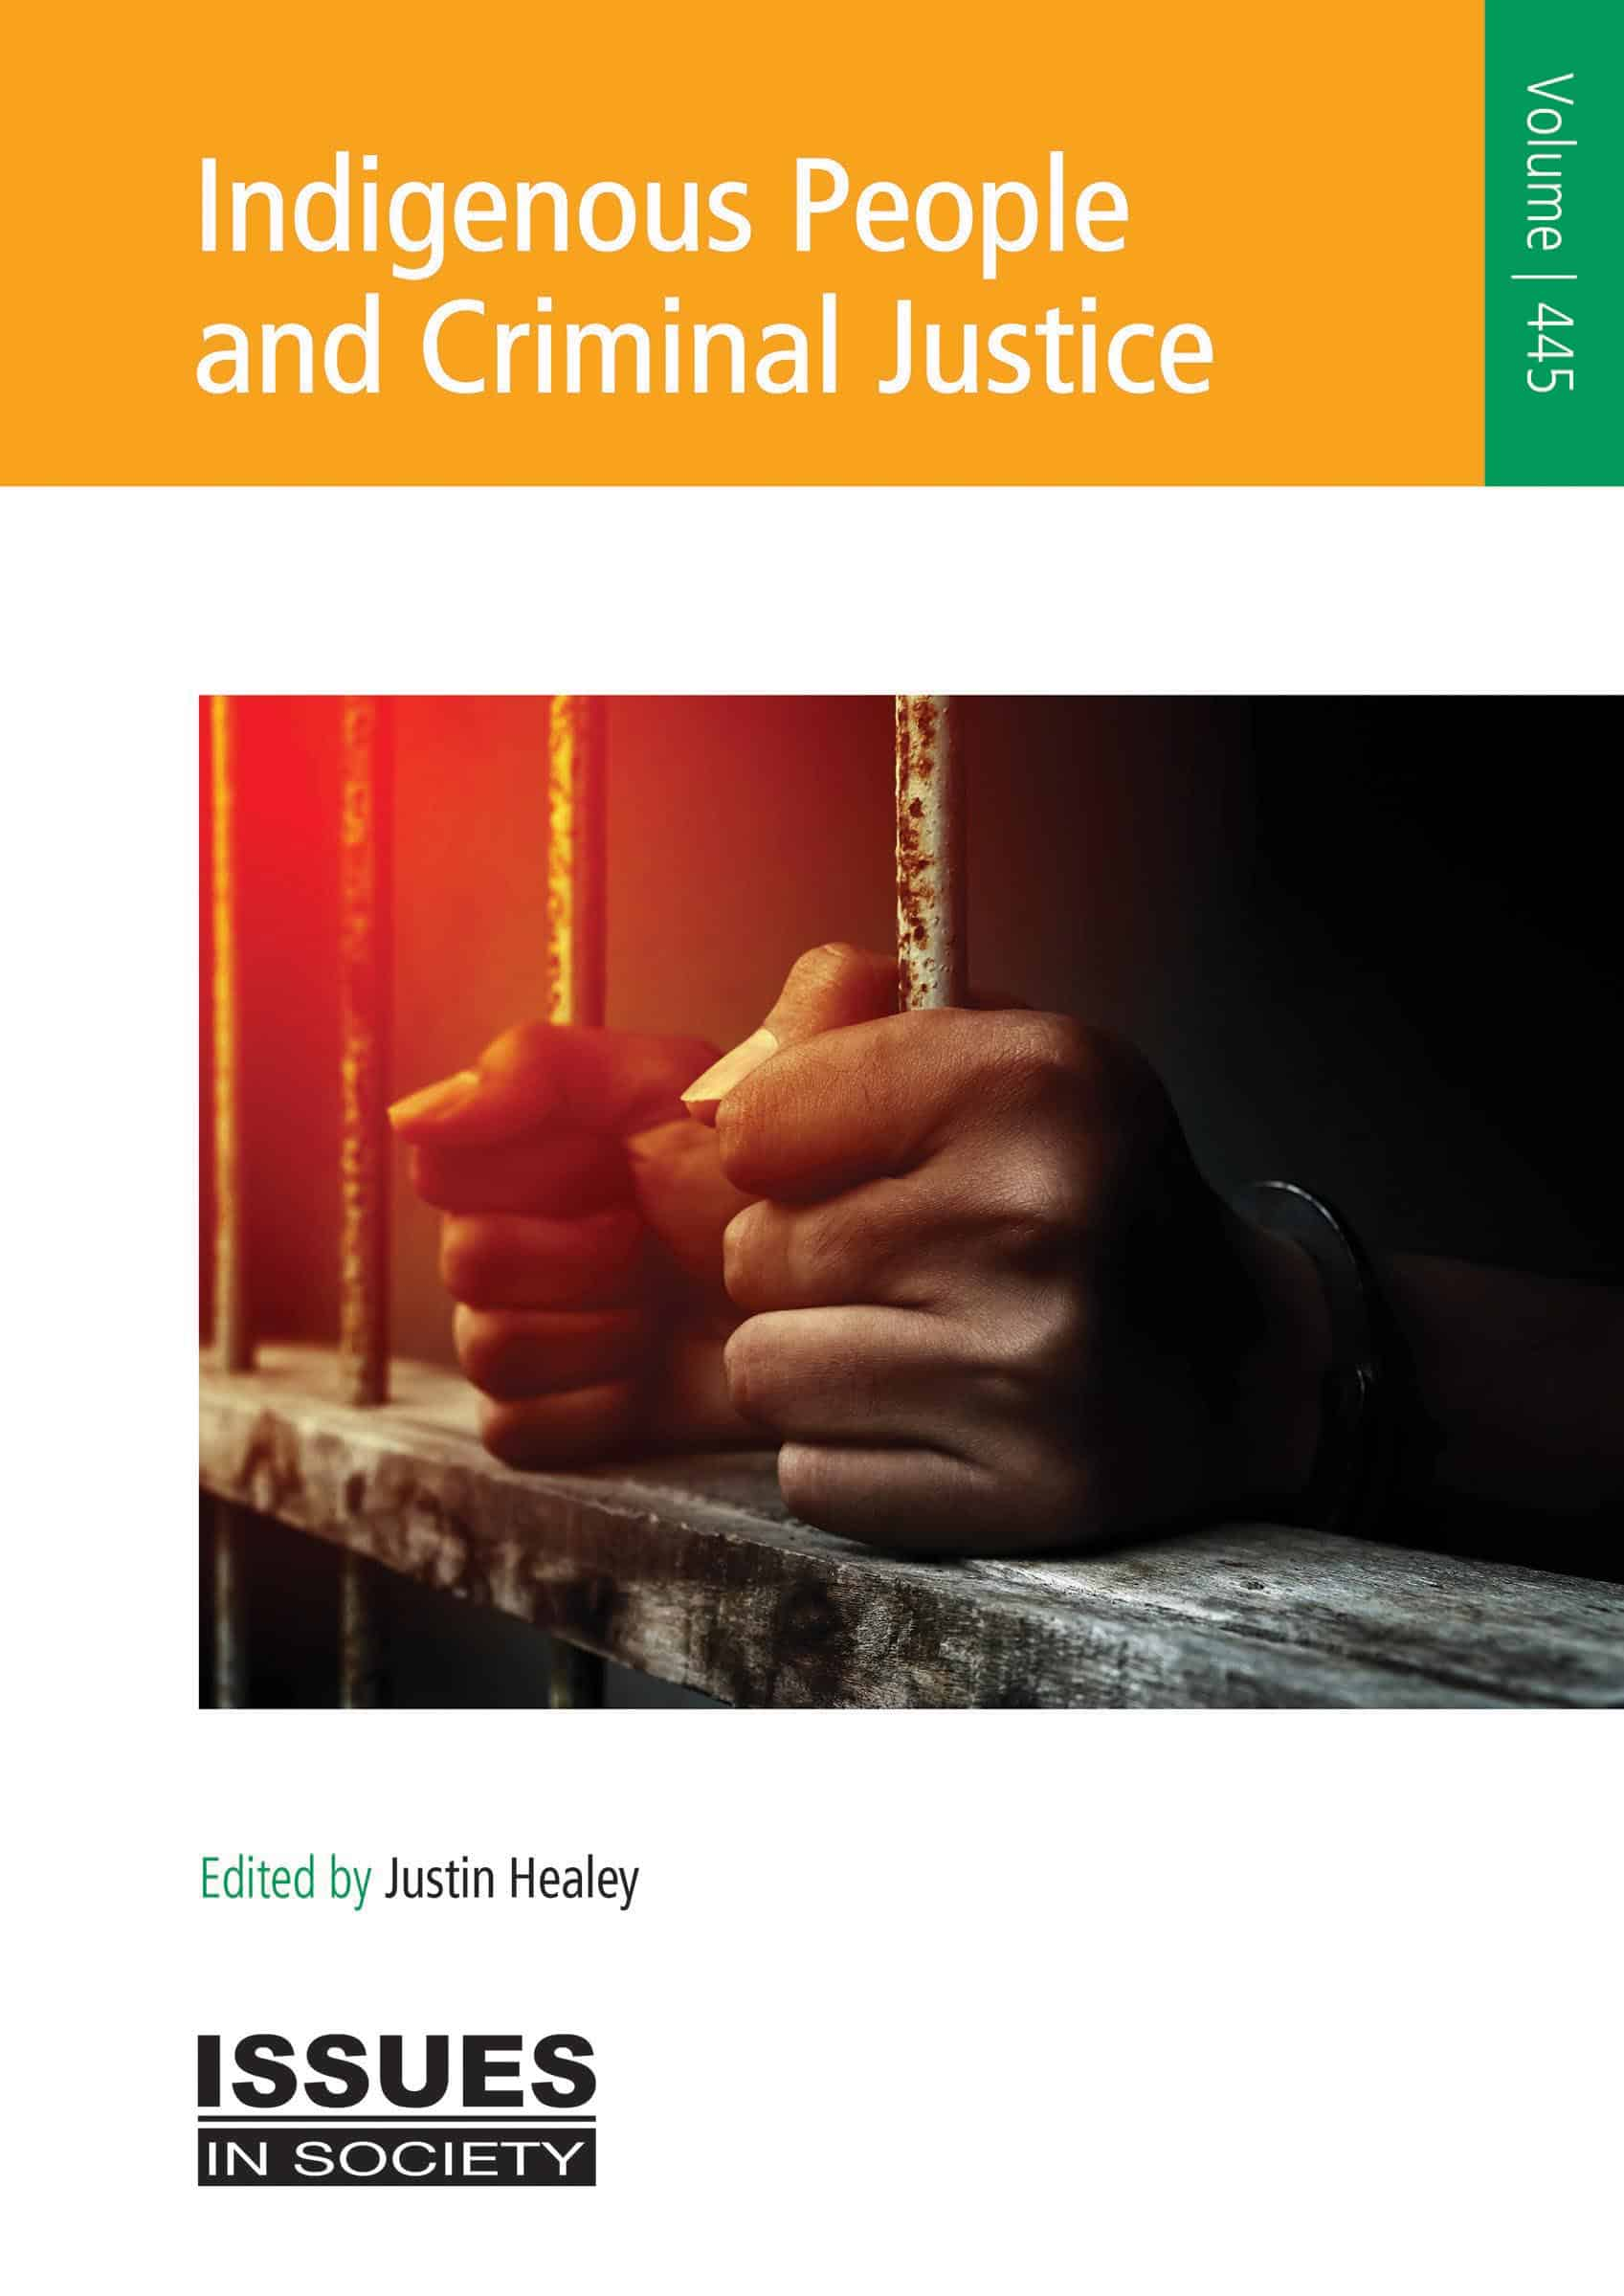 Indigenous People and Criminal Justice